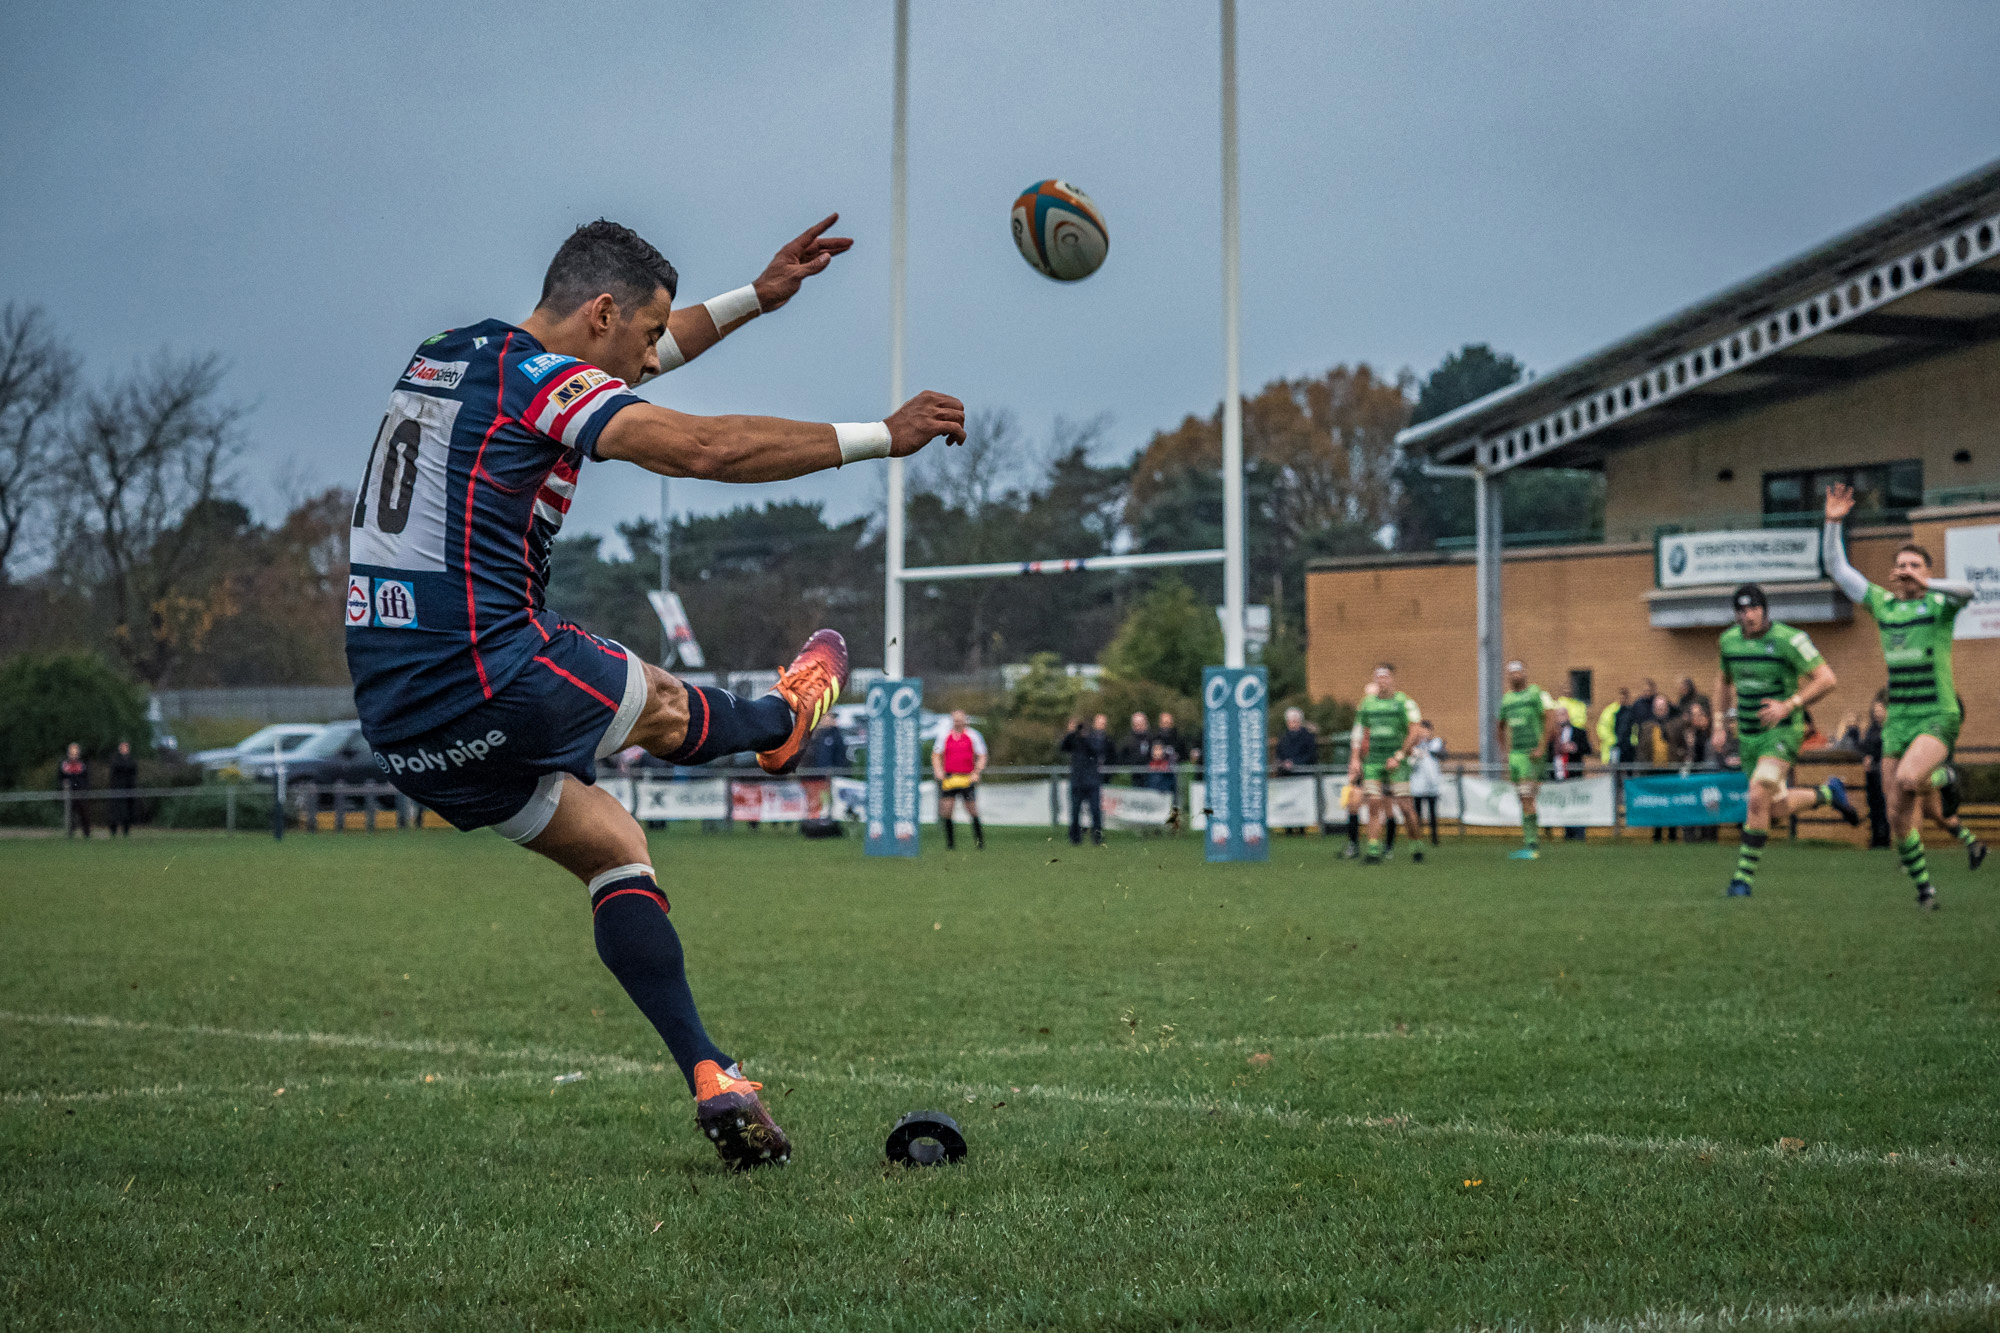 Kick from a different angle - this is the Knights' Kurt Morath, returning from international duty